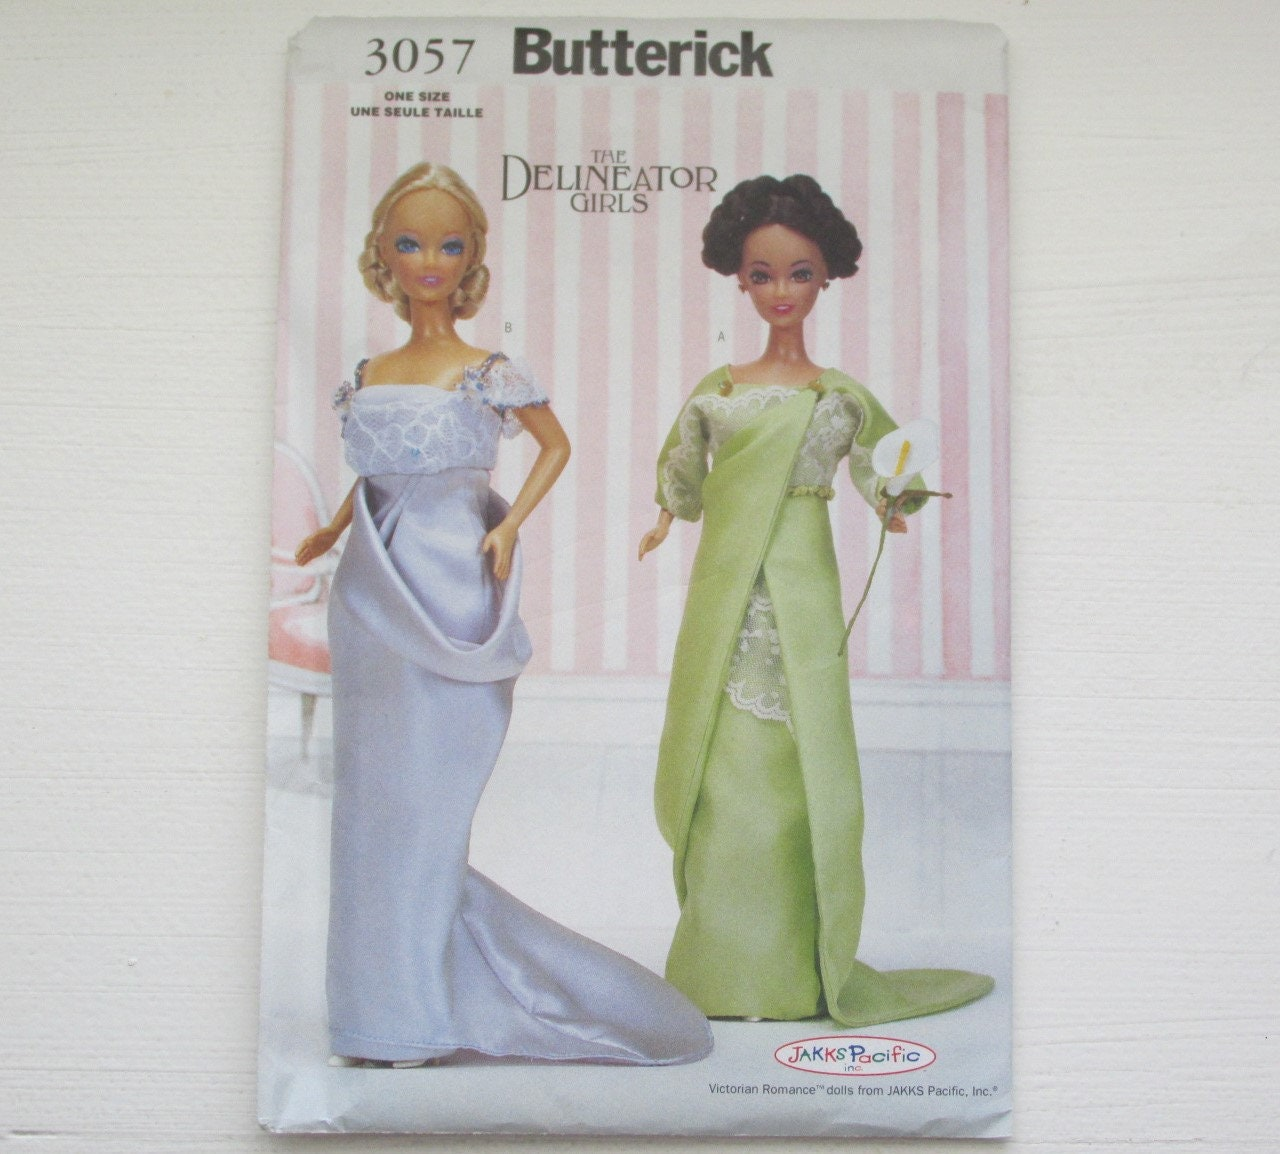 Butterick 3057 Delineator Girls Circa 1912 Doll Clothes